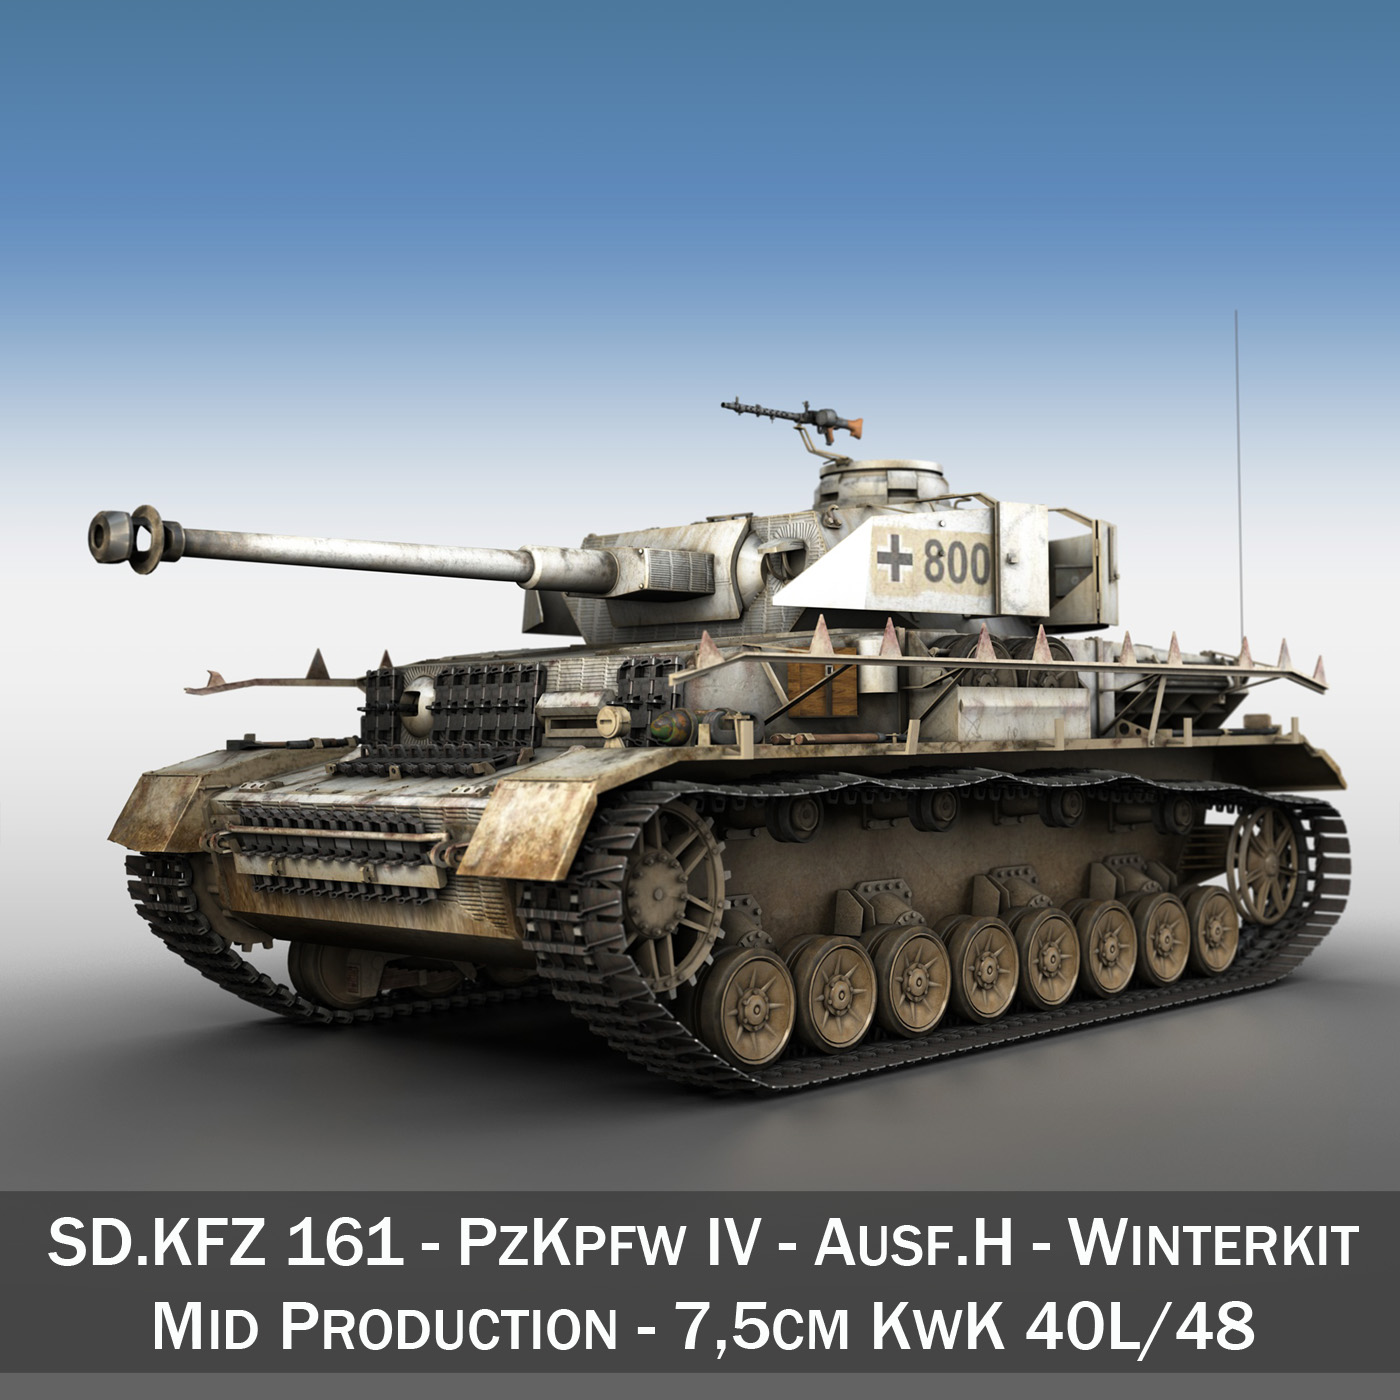 sd.kfz 161 – pzkpfw iv – panzer 4 – ausf.h winter 3d model 3ds fbx c4d lwo obj 191513